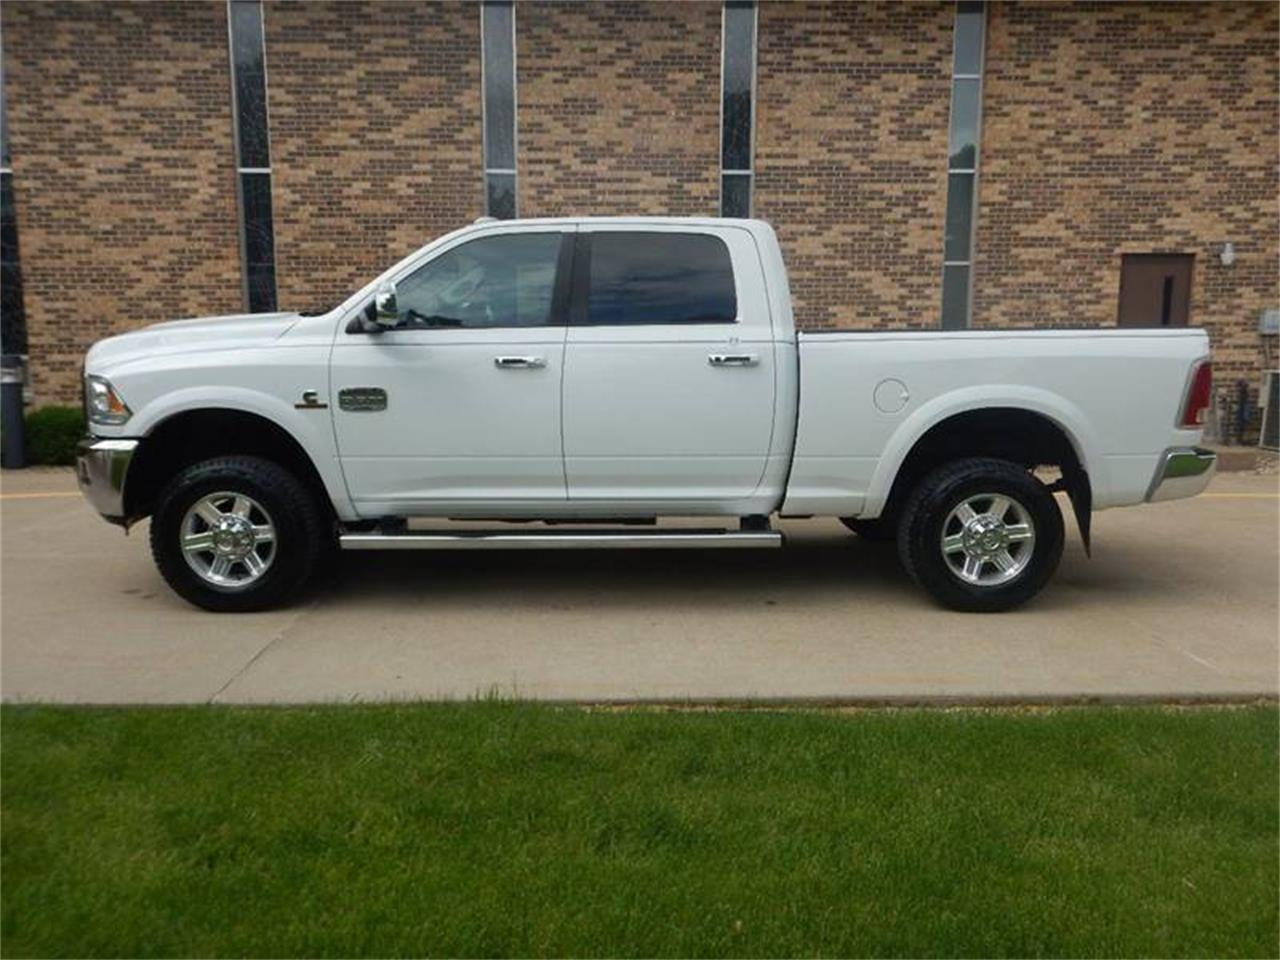 Large Picture of '13 Dodge Ram 2500 located in Clarence Iowa - Q7IS